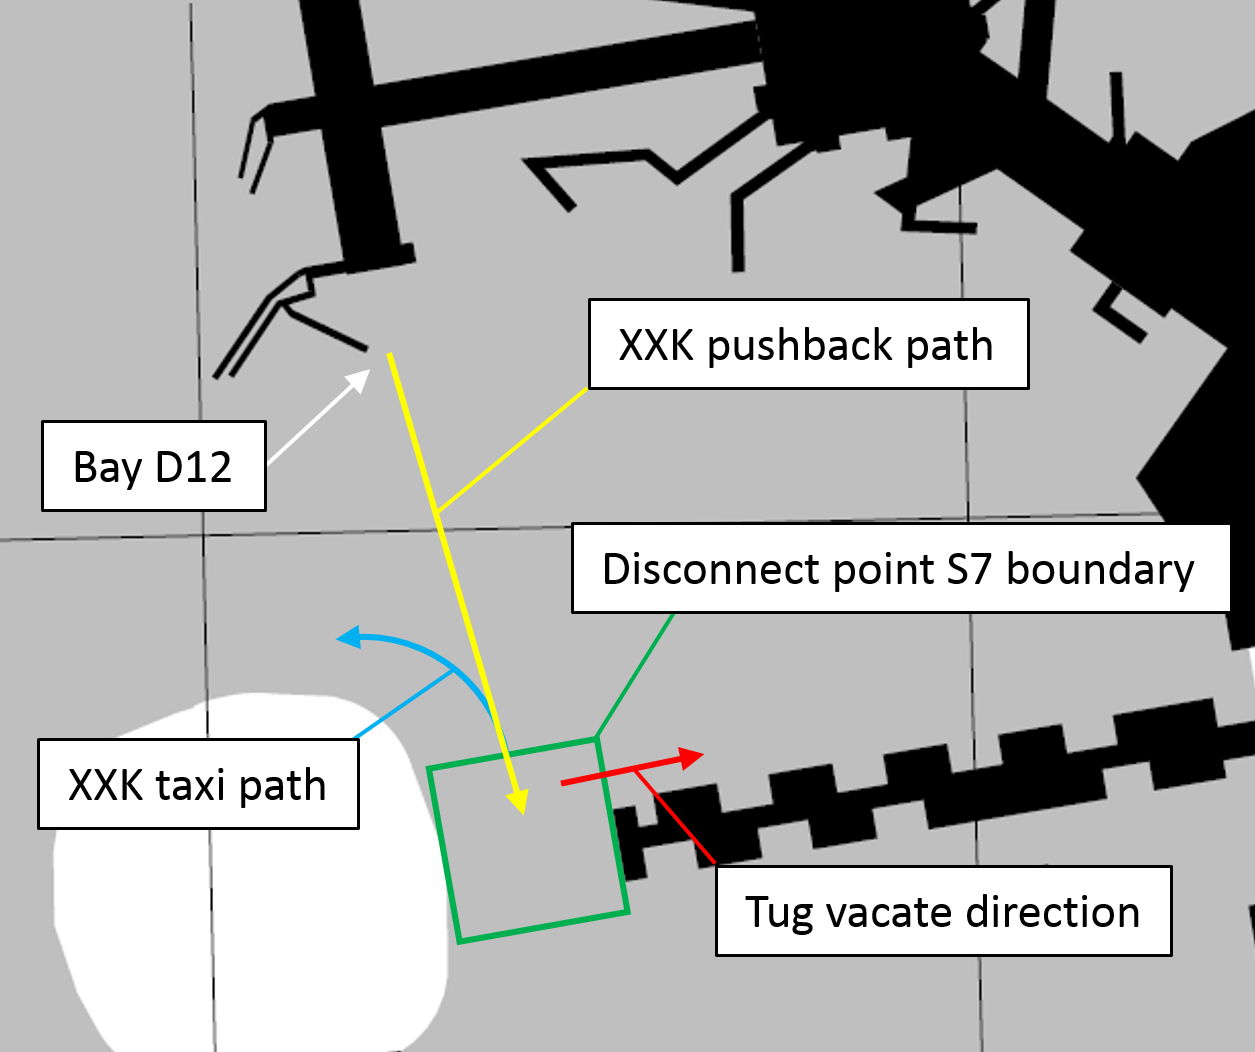 Figure 1: Melbourne Airport apron section overview